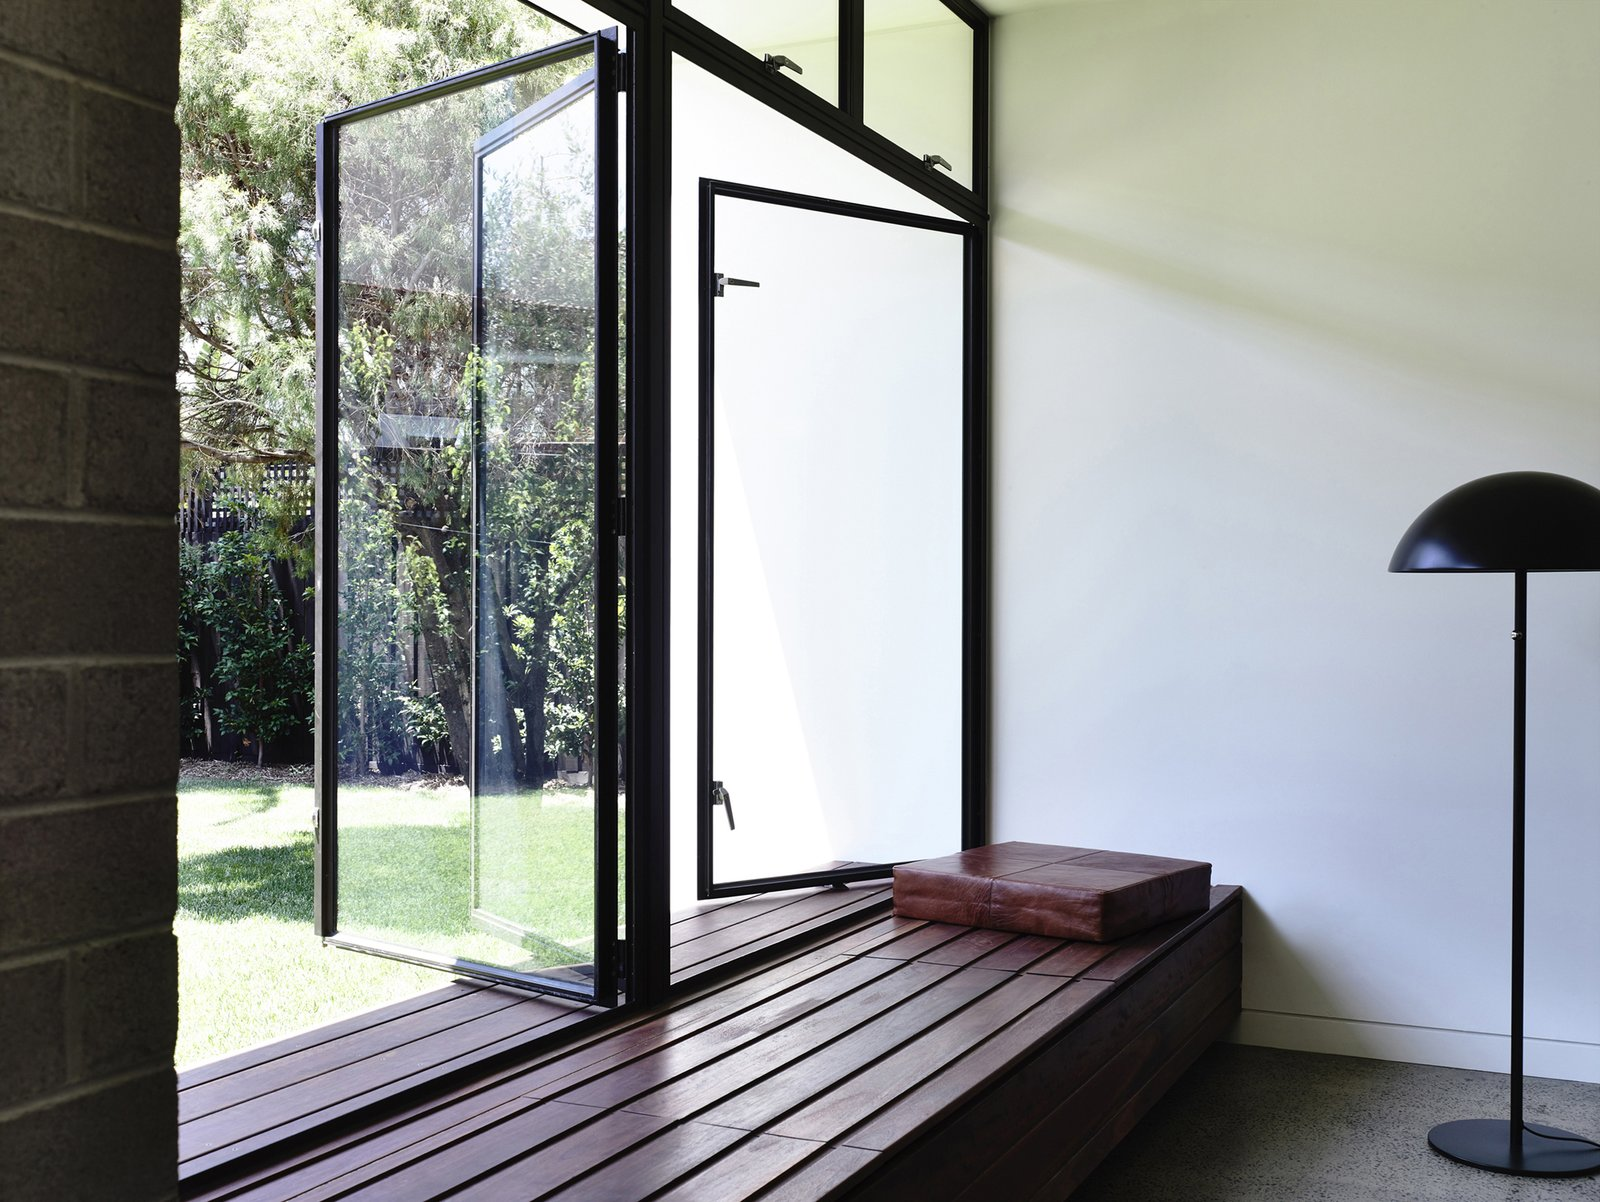 Photo 9 of 10 in Old Meets New in This Modern Extension to an Edwardian House in Melbourne